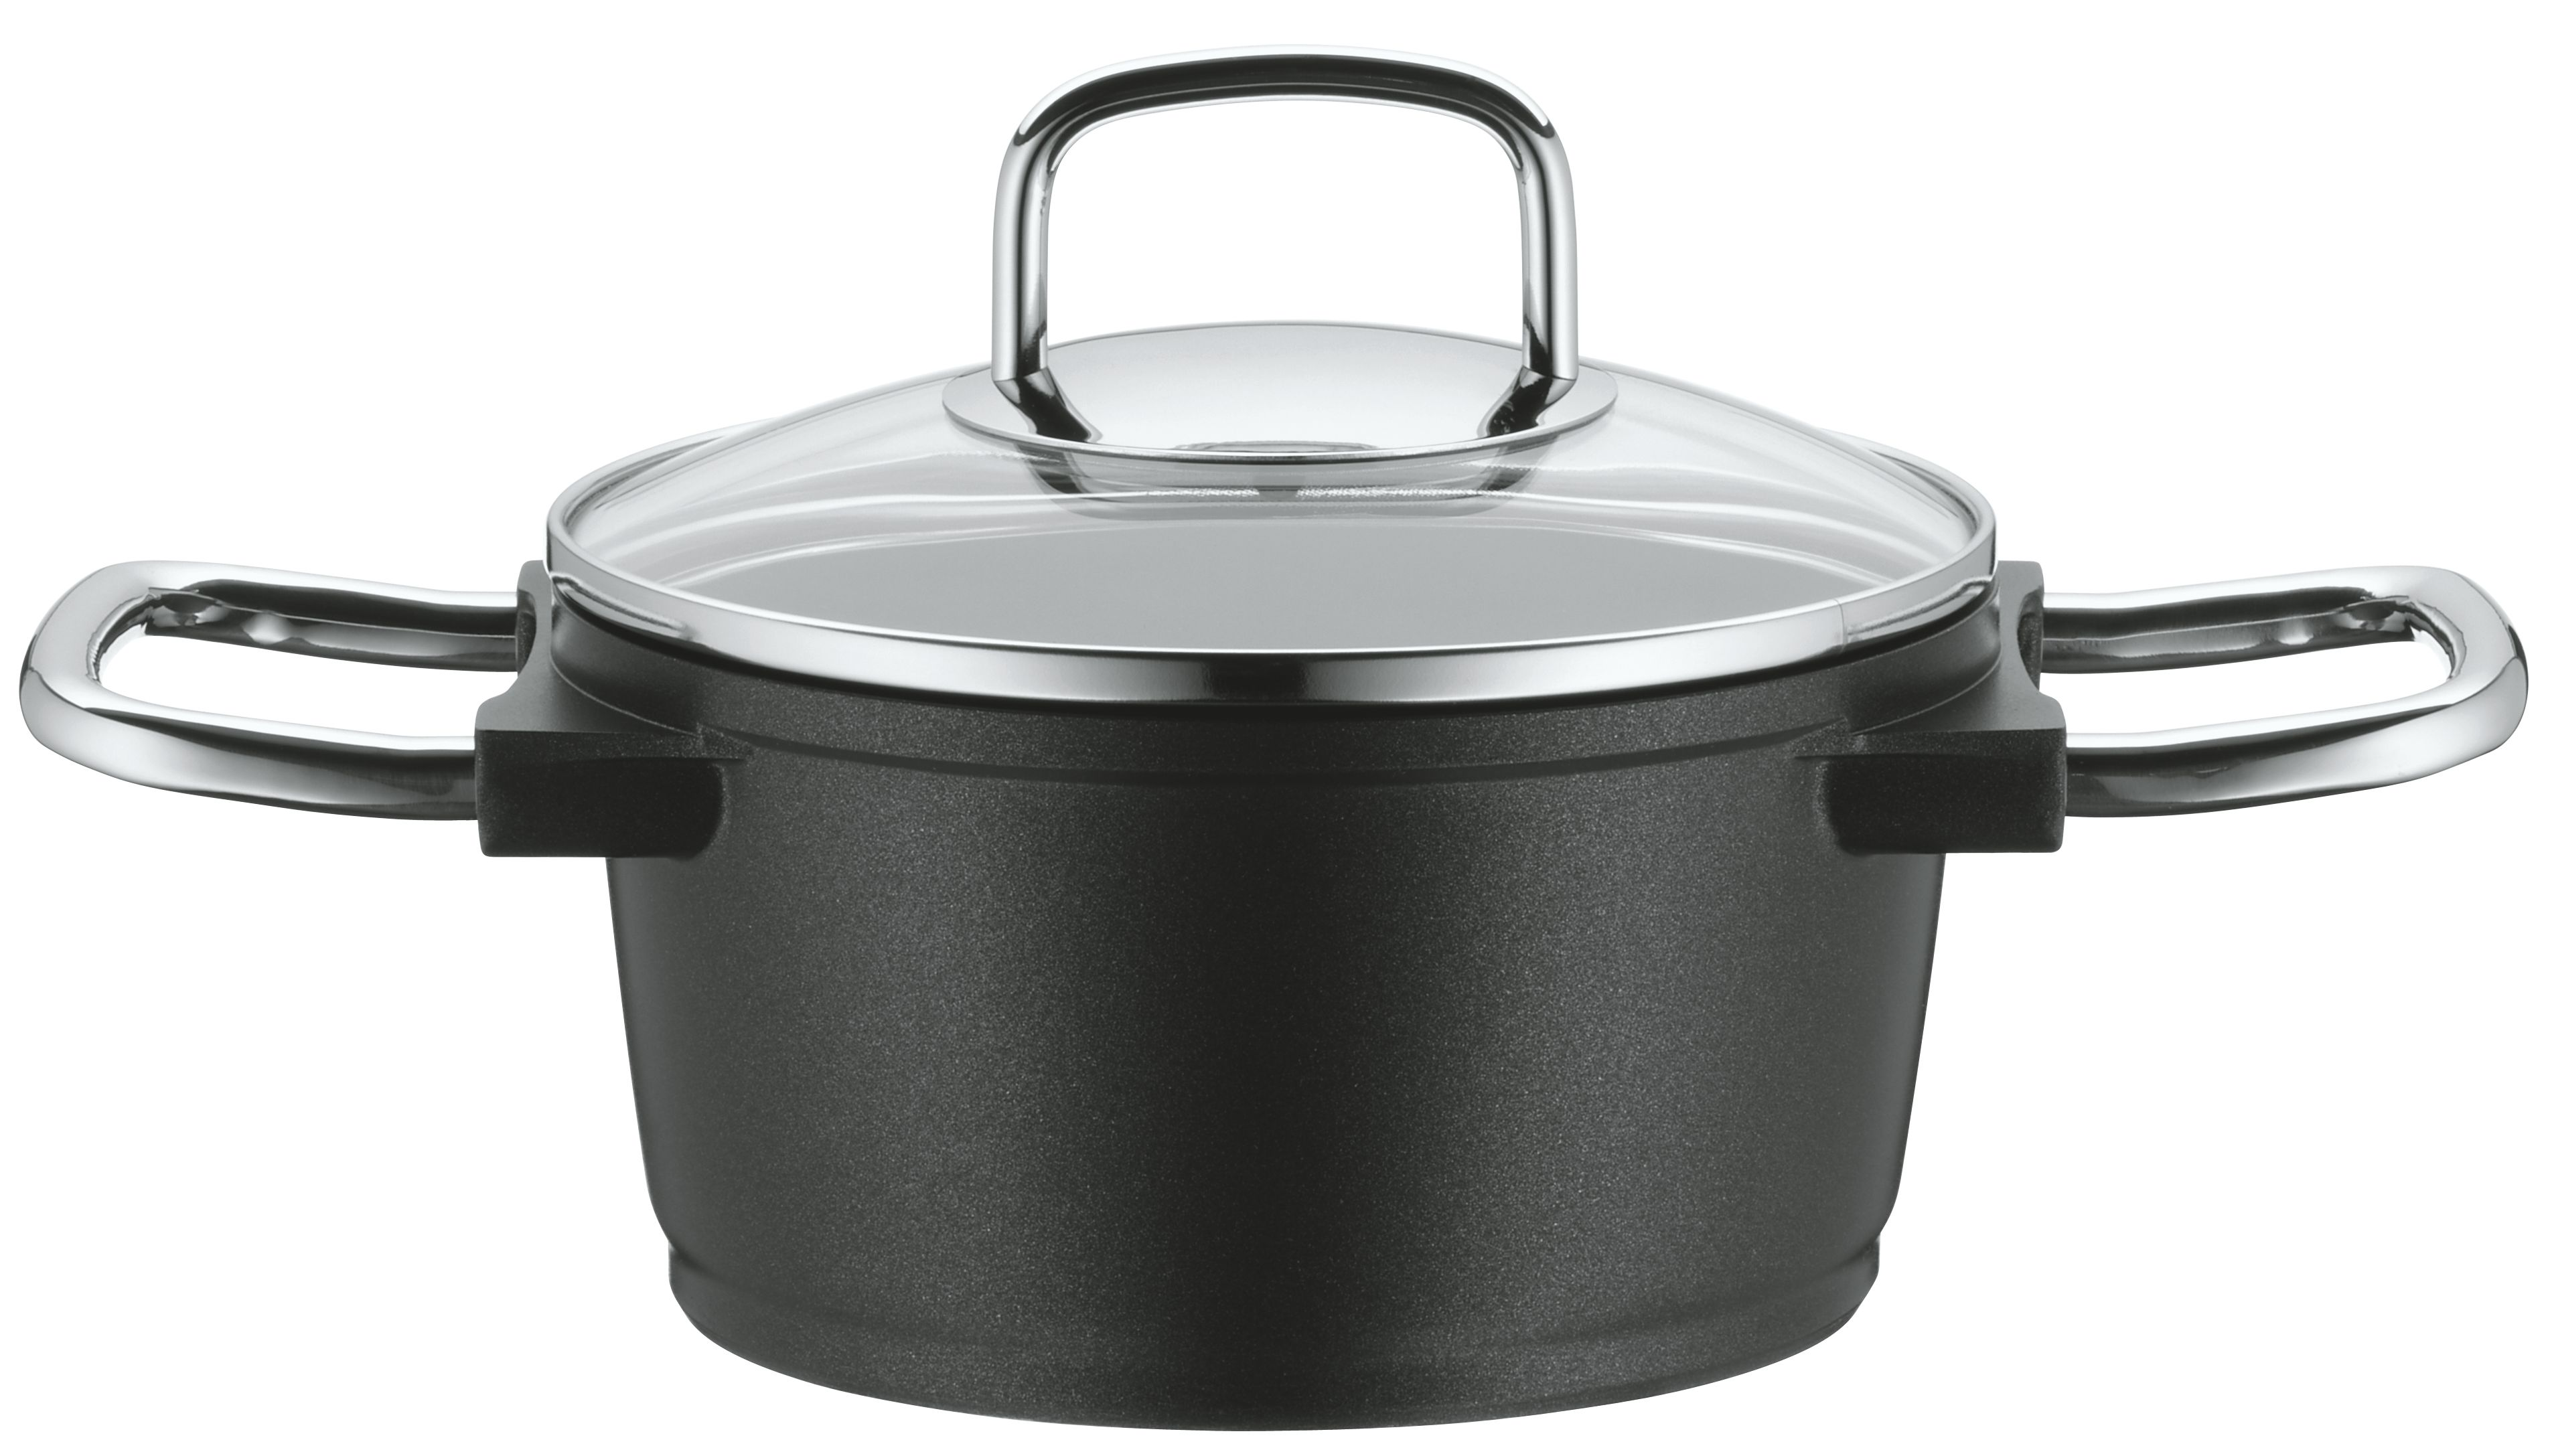 WMF WMF Bueno induction high casserole with glass lid